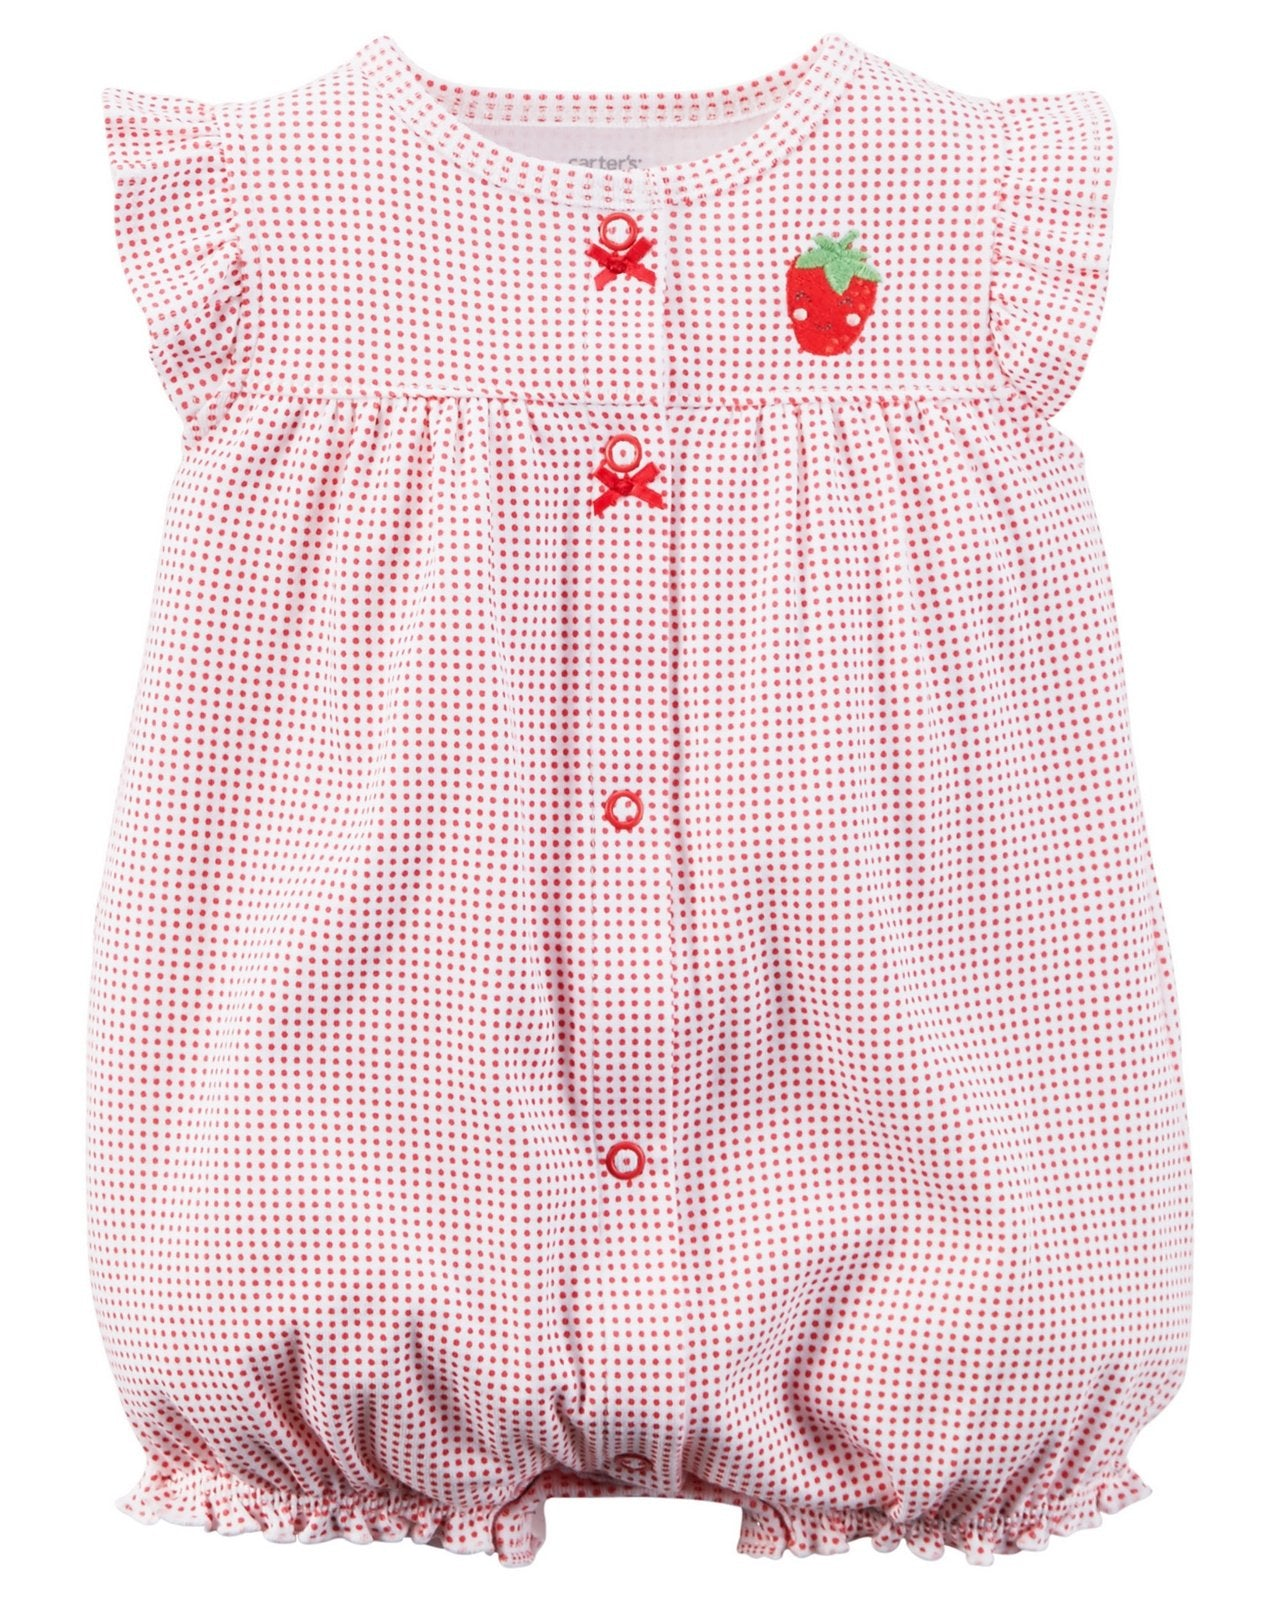 Carter's Snap-Up Appliqué Cotton Romper  Modelo 118G272